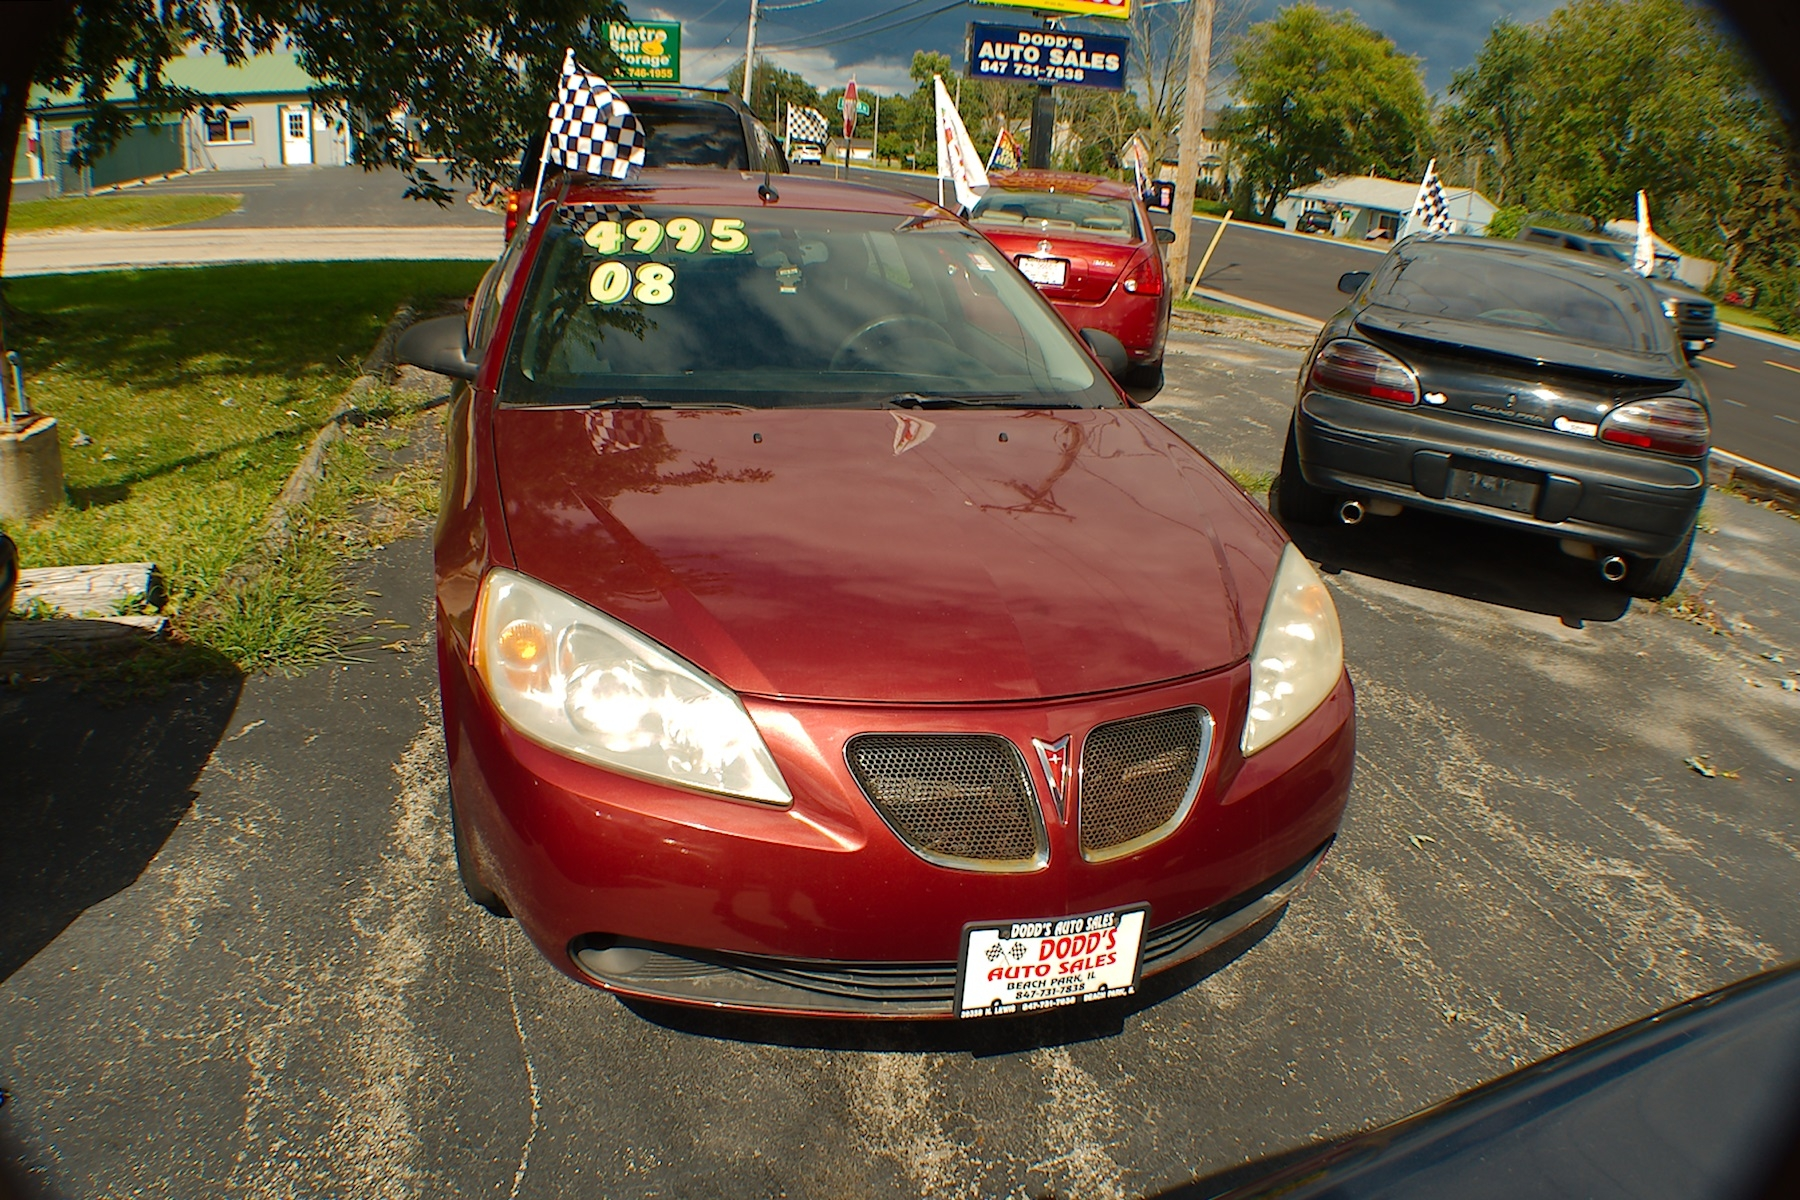 2008 Pontiac G6 Red Sedan Used Car Sale Gurnee Kenosha Mchenry Chicago Illinois